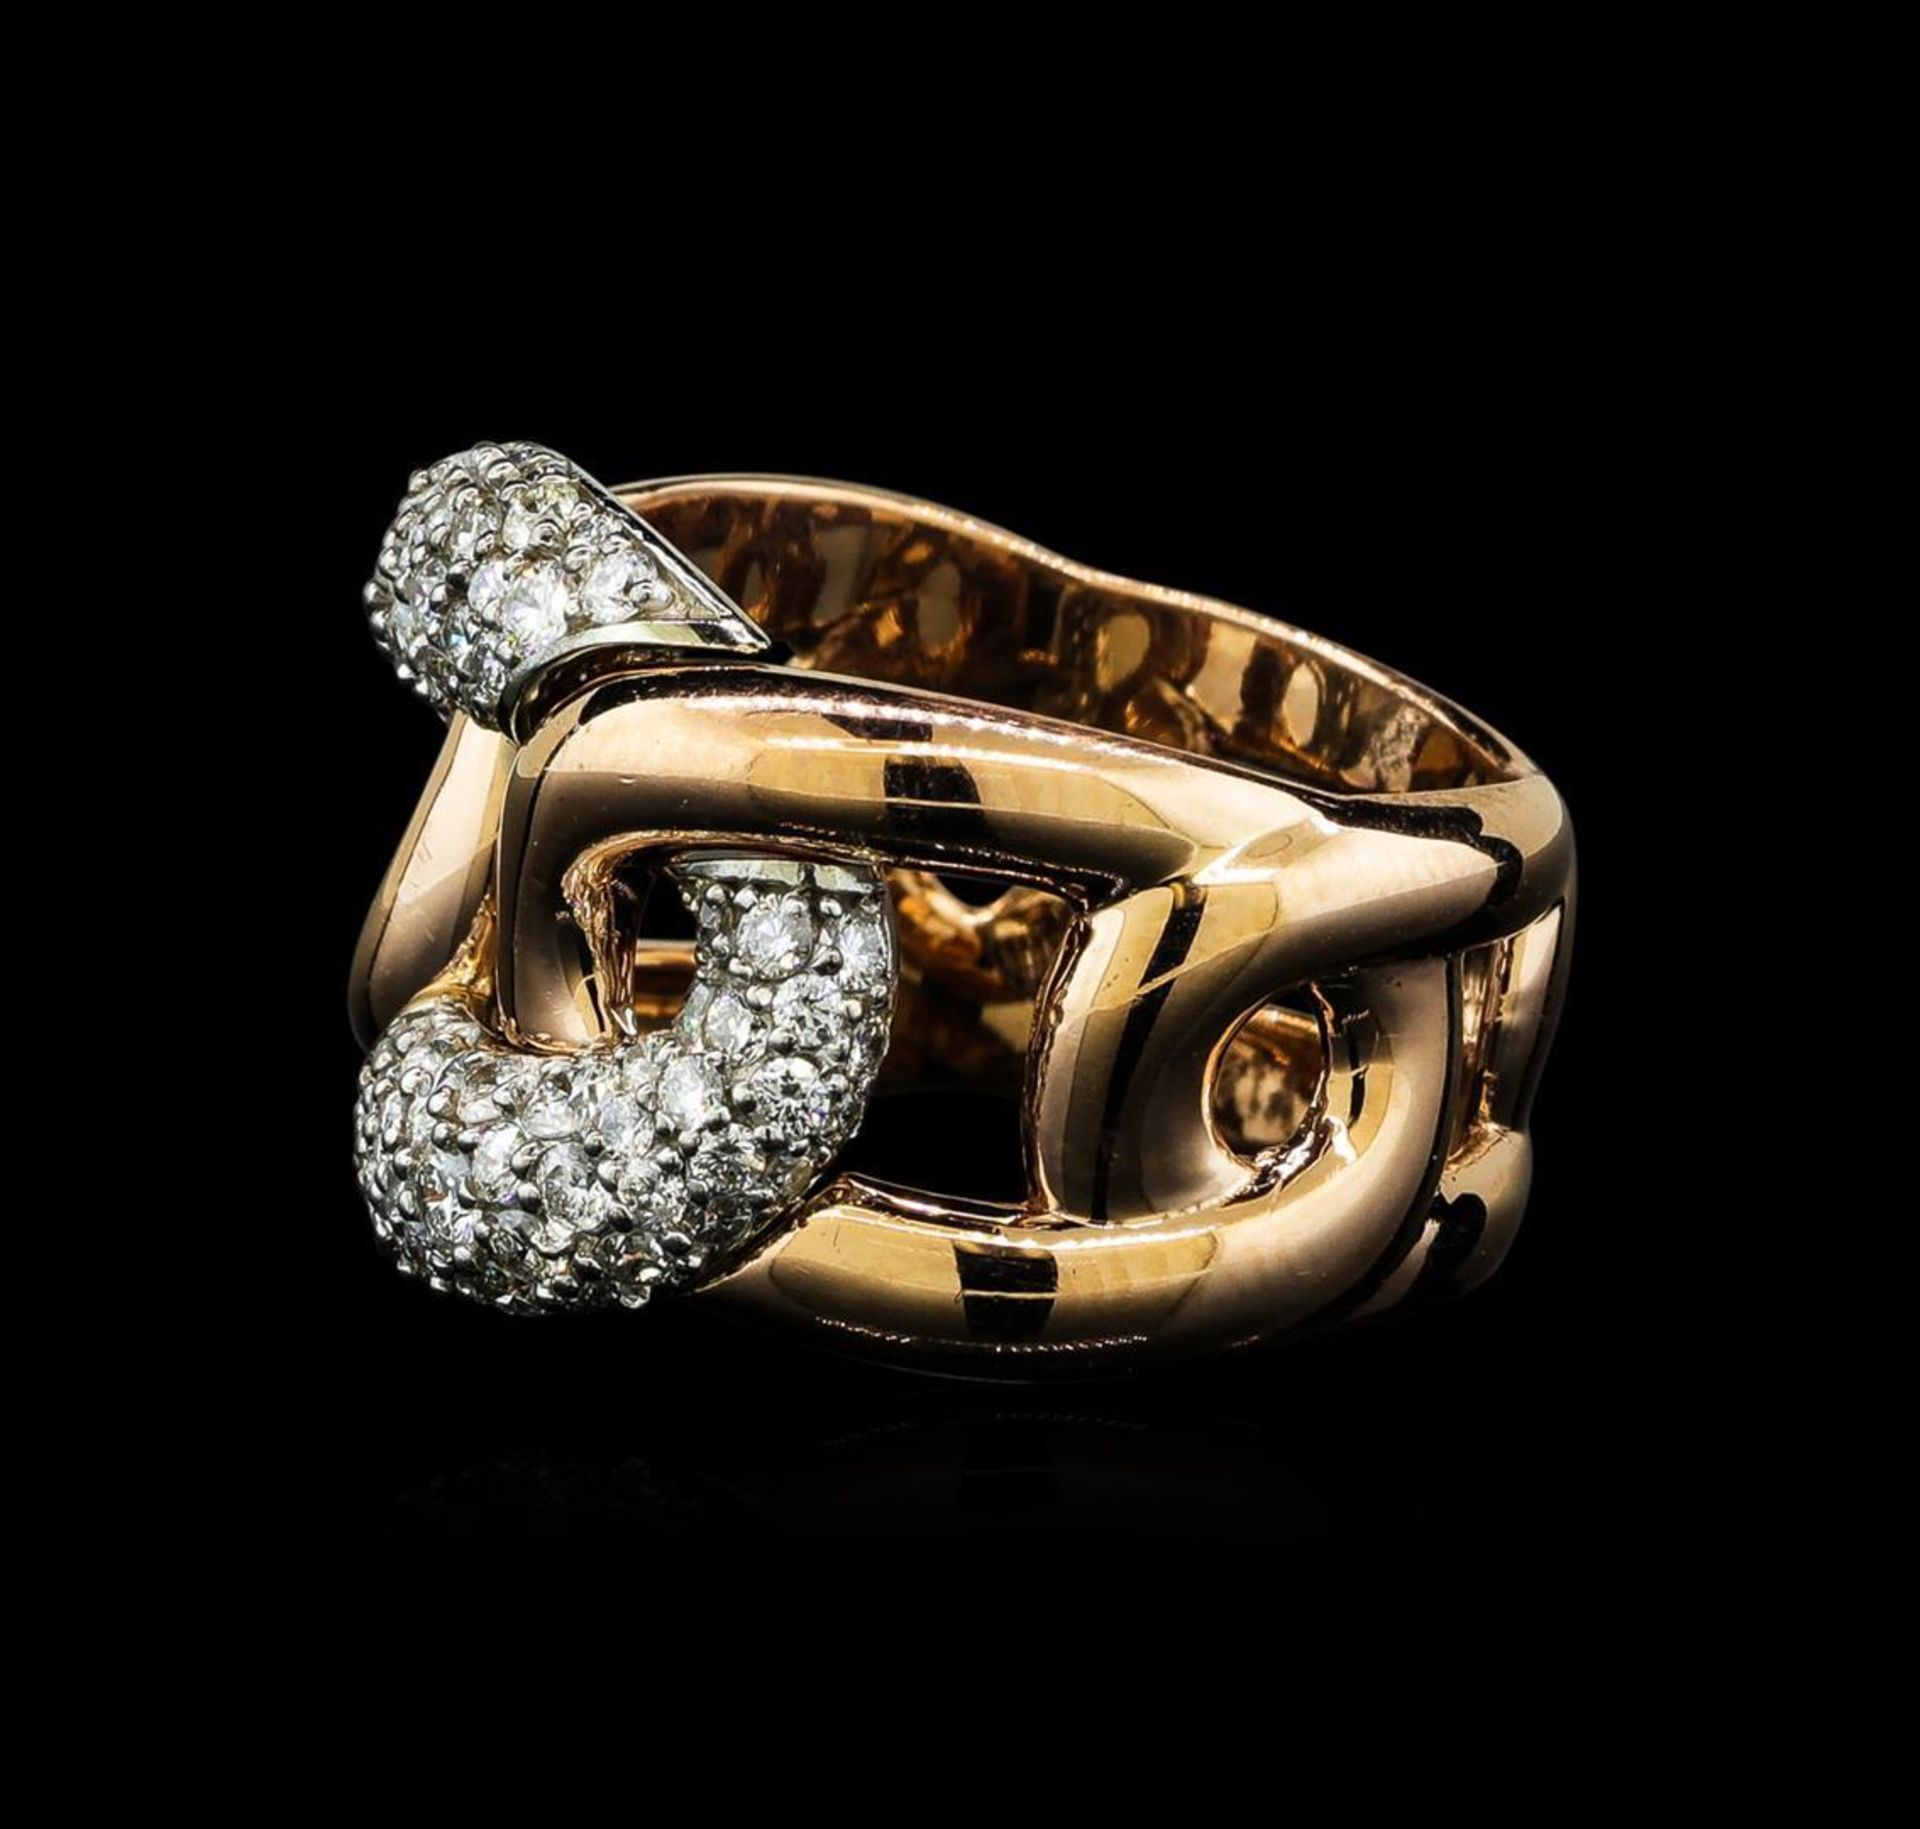 1.35 ctw Diamond Ring - 14KT Rose and White Gold - Image 3 of 5